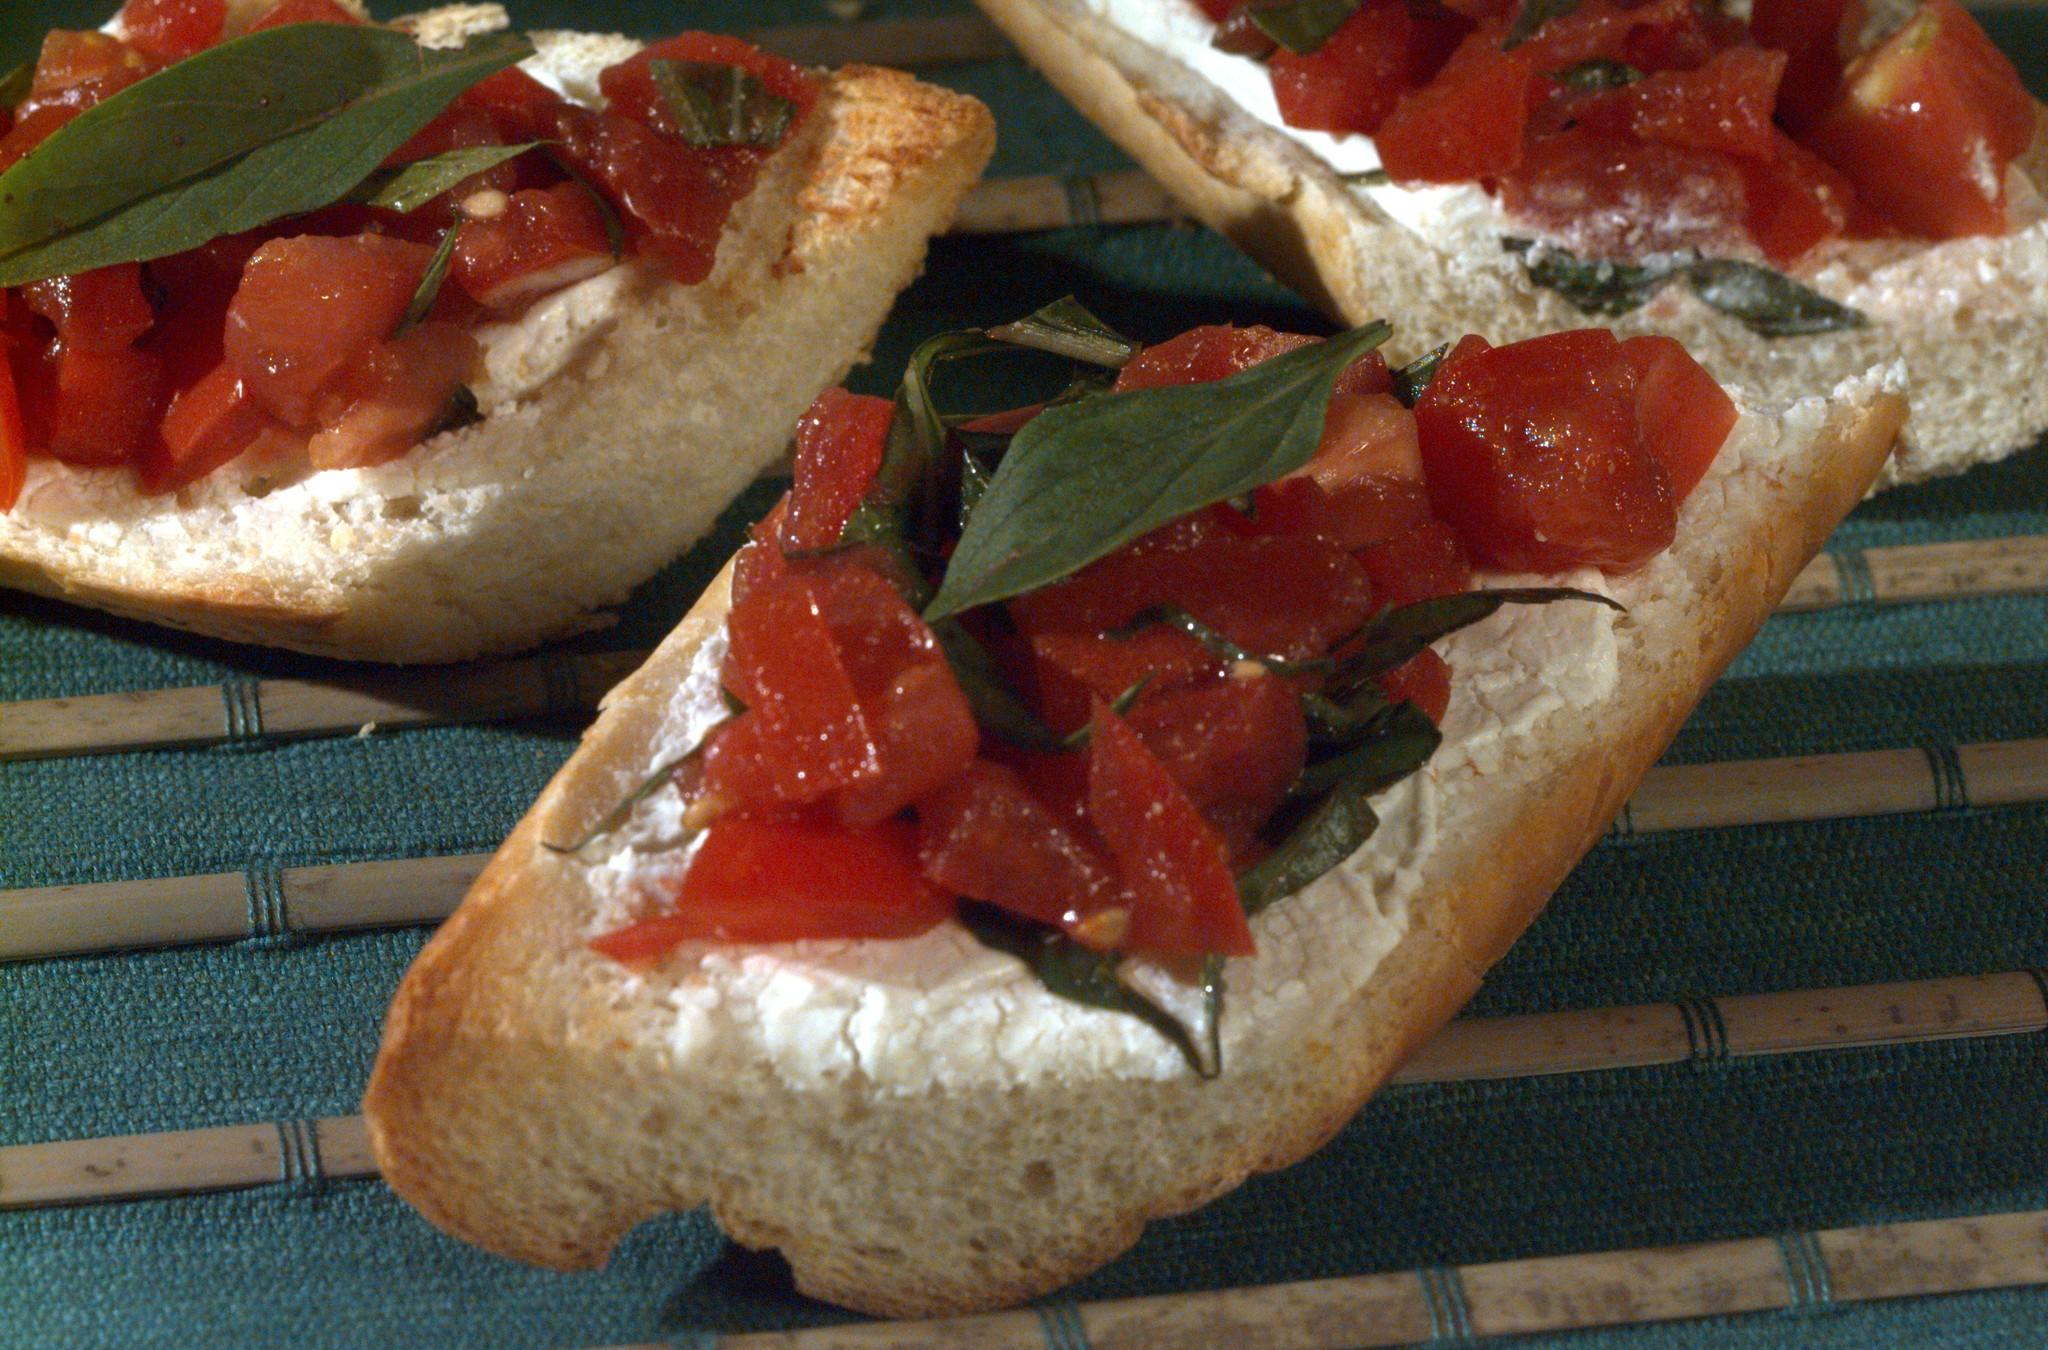 Warm Goat Cheese Bread With Tomatoes and Basil